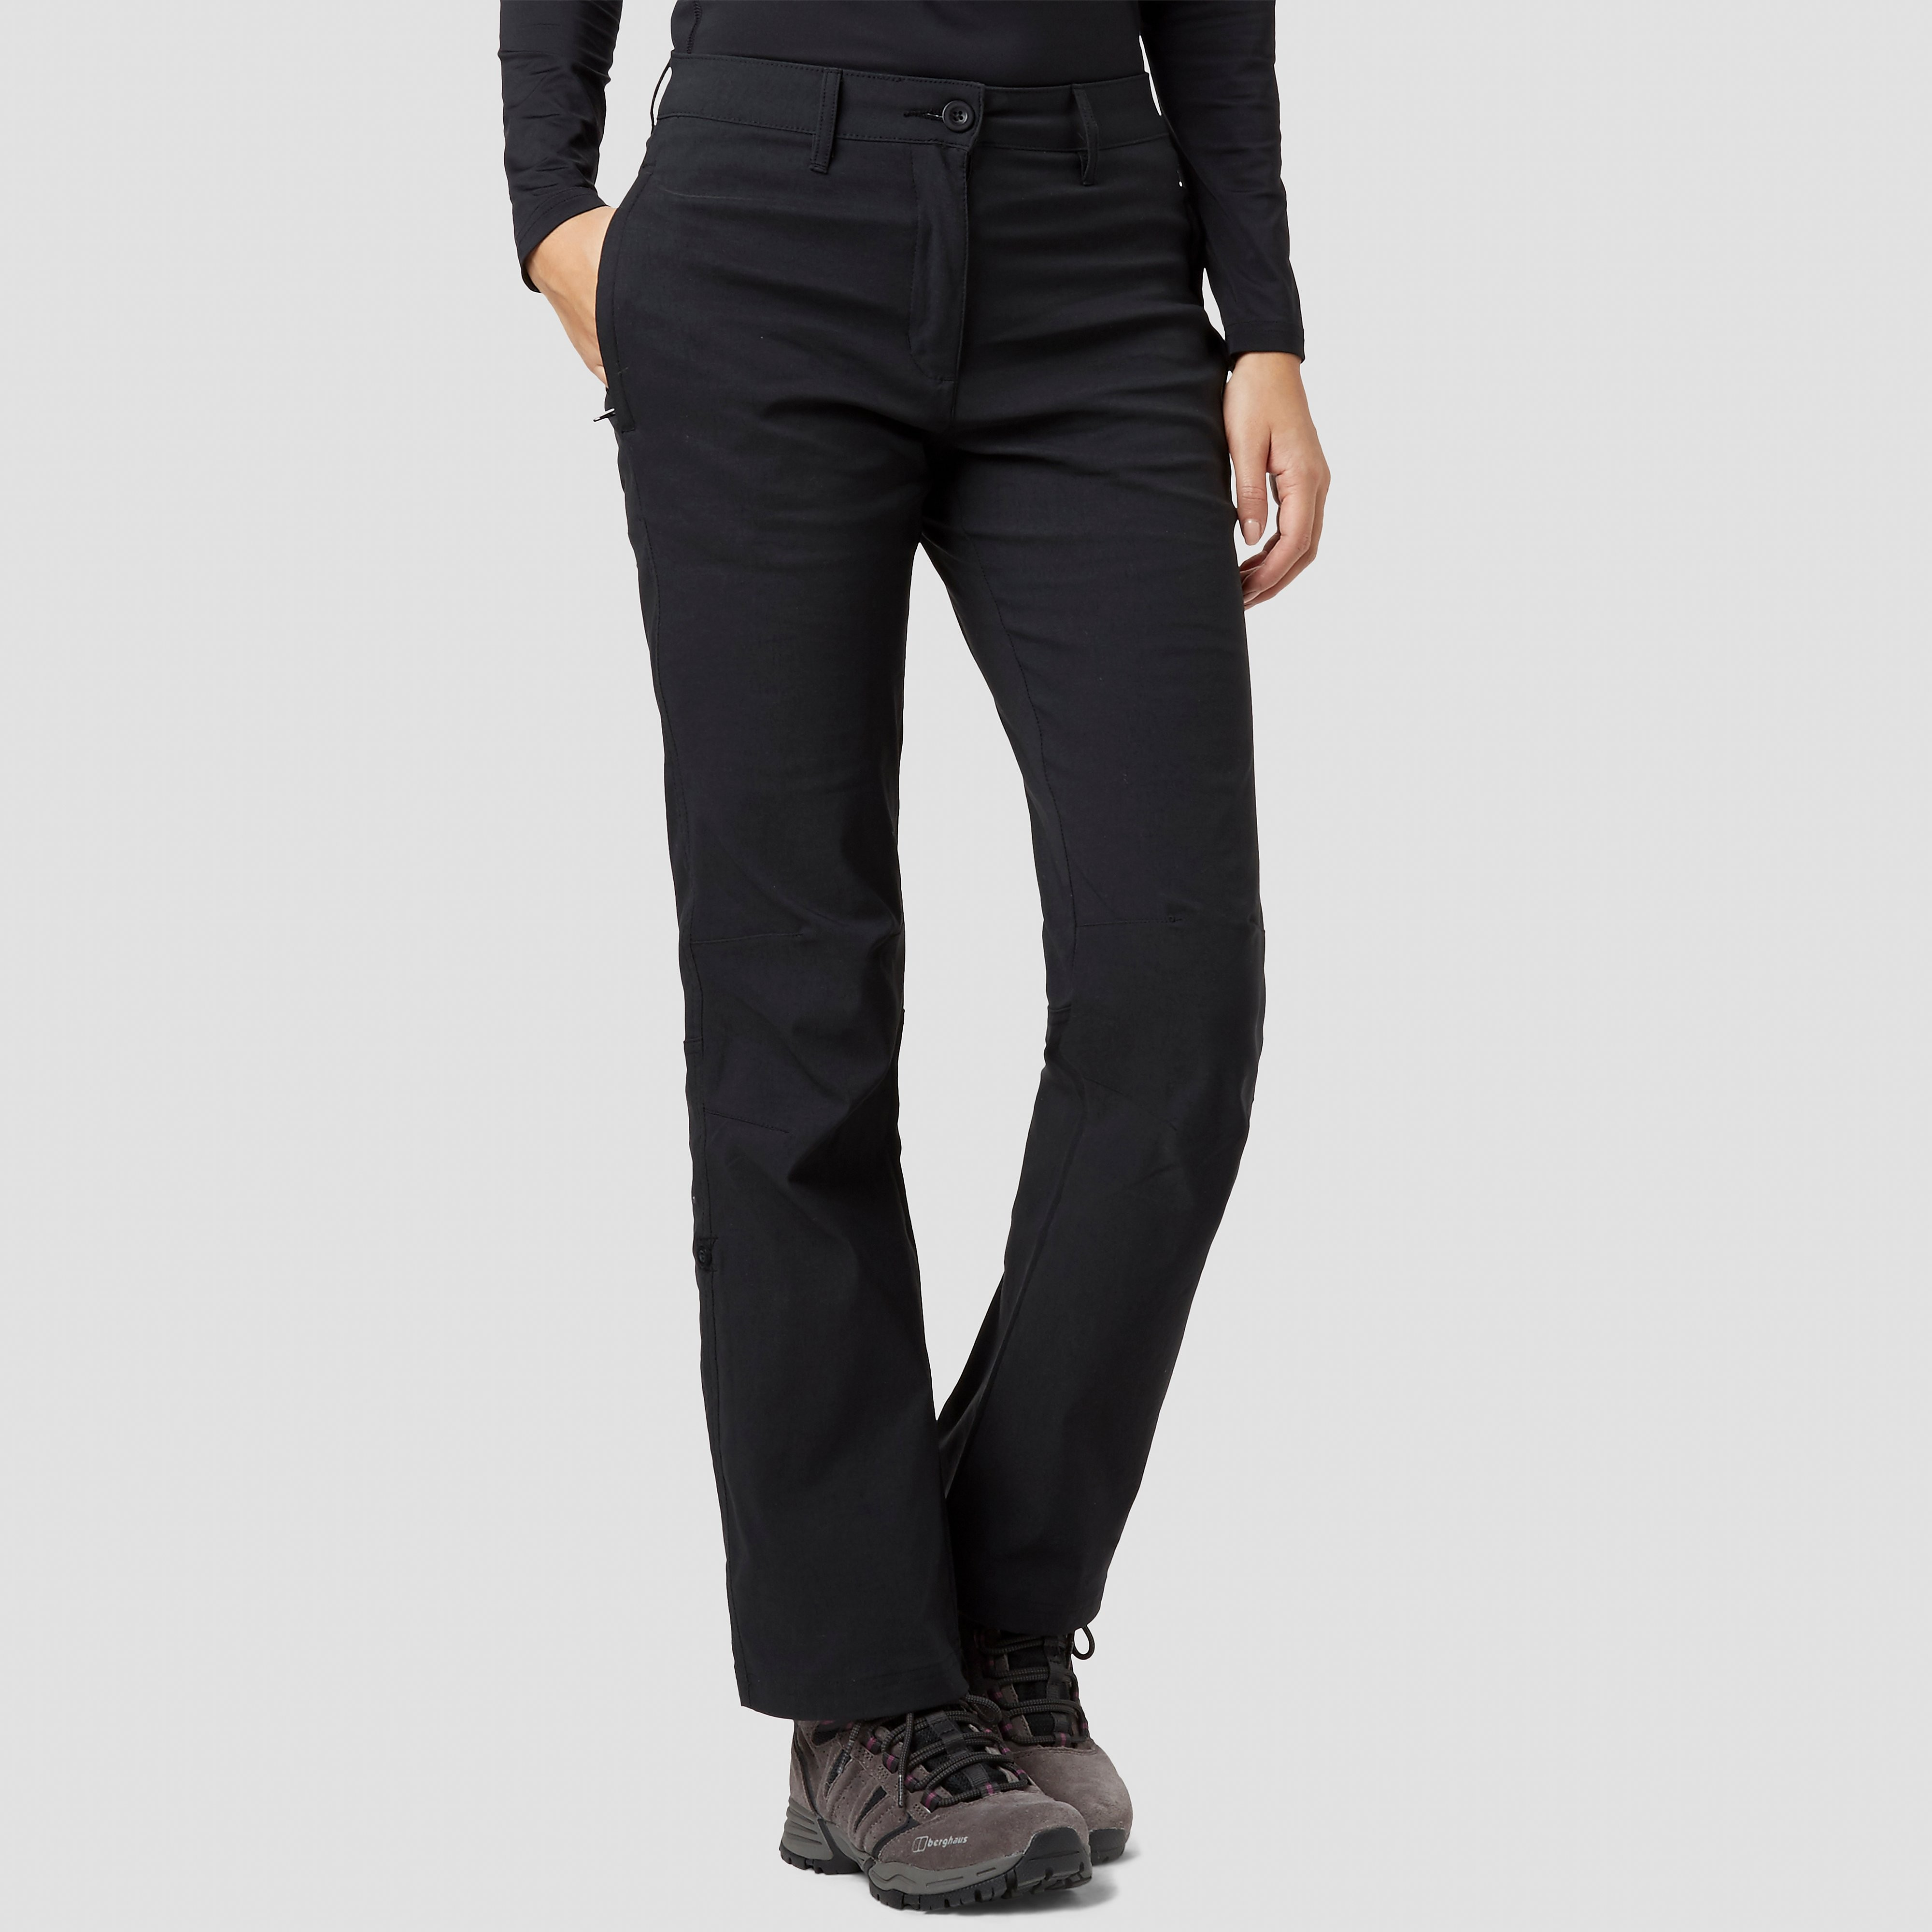 Peter Storm Women's Stretch Roll Up Trousers - Large